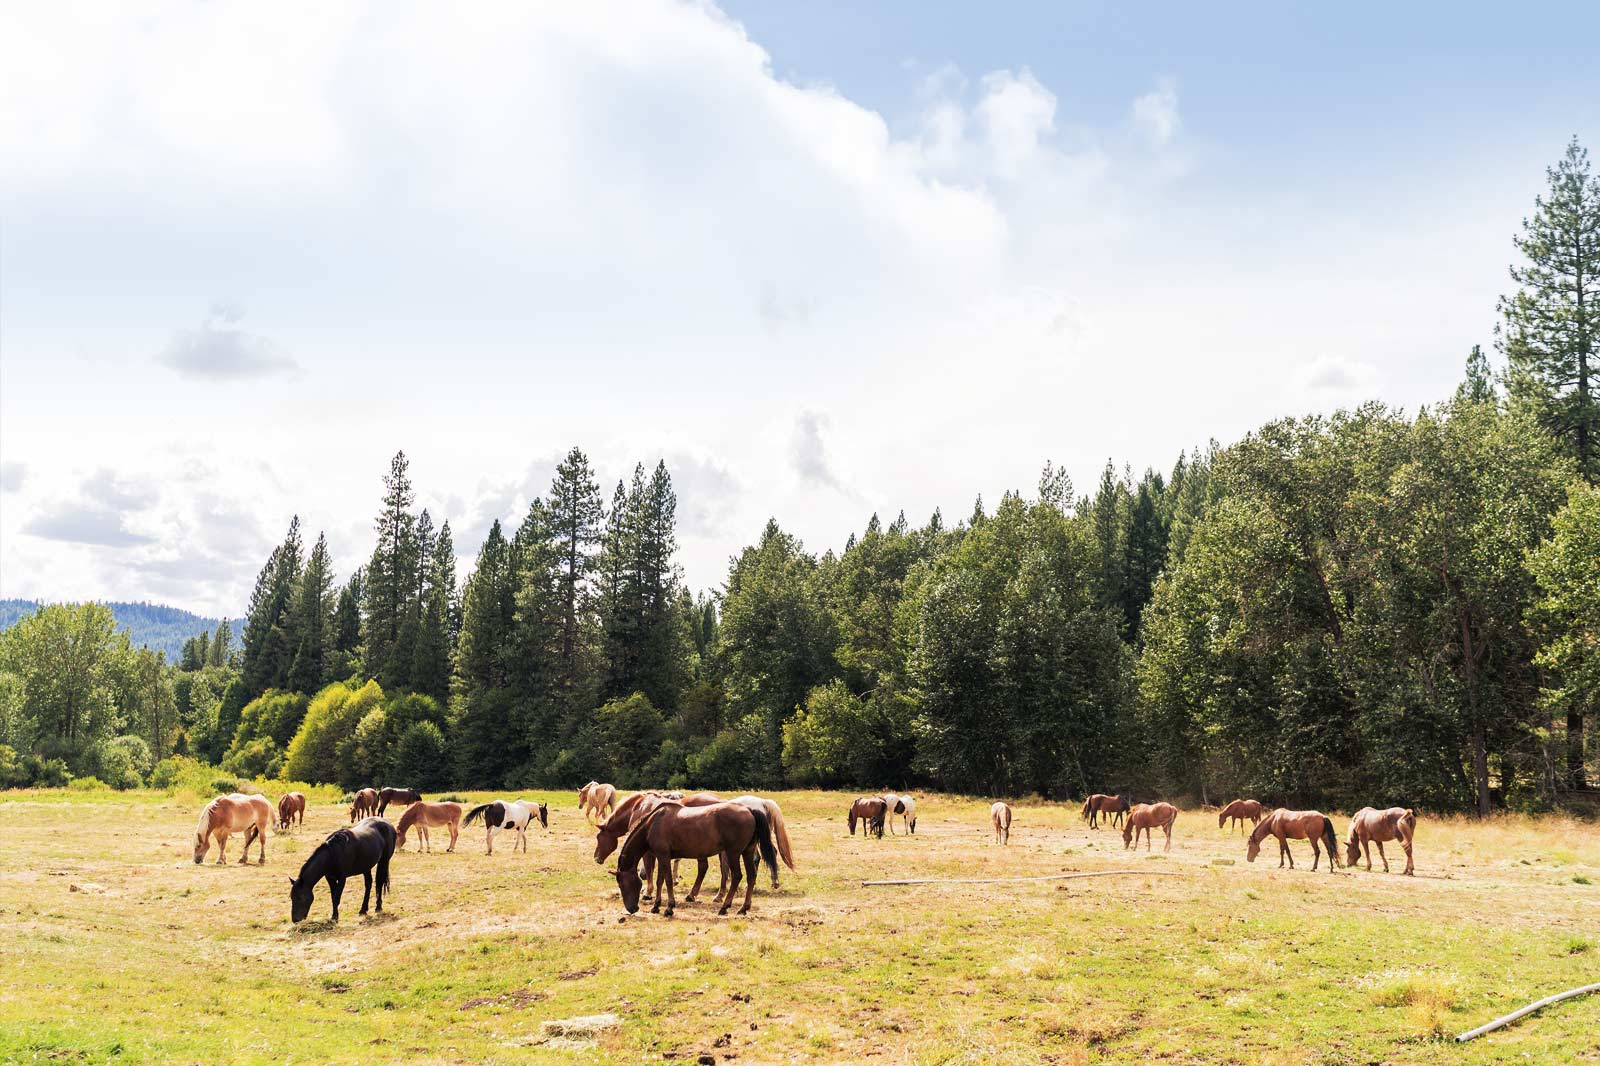 Horses grazing on grass at Greenhorn Ranch